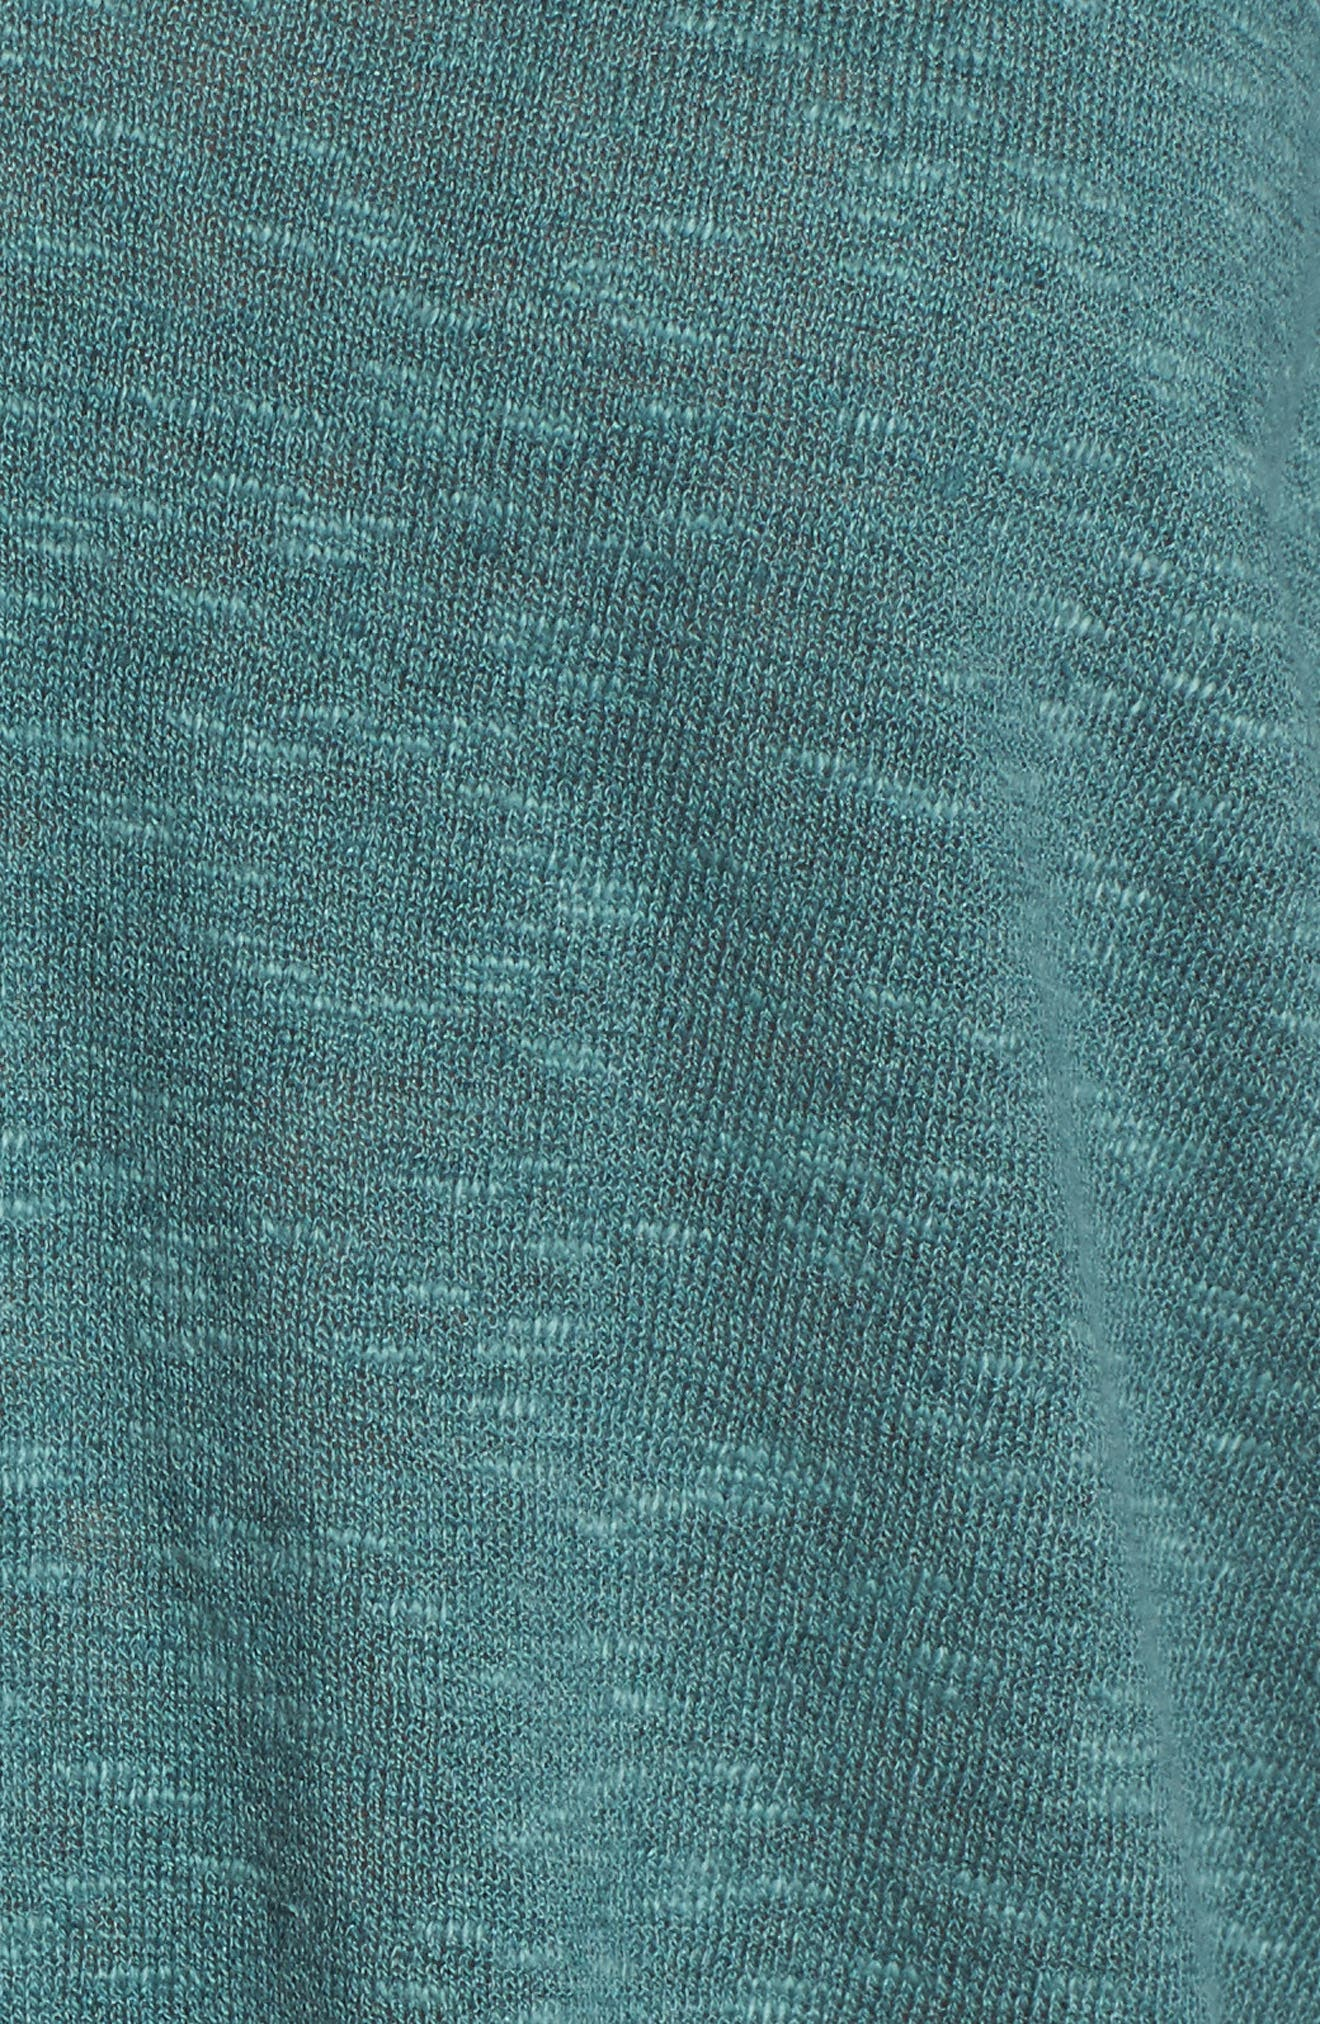 Organic Linen & Cotton Sweater,                             Alternate thumbnail 5, color,                             Teal